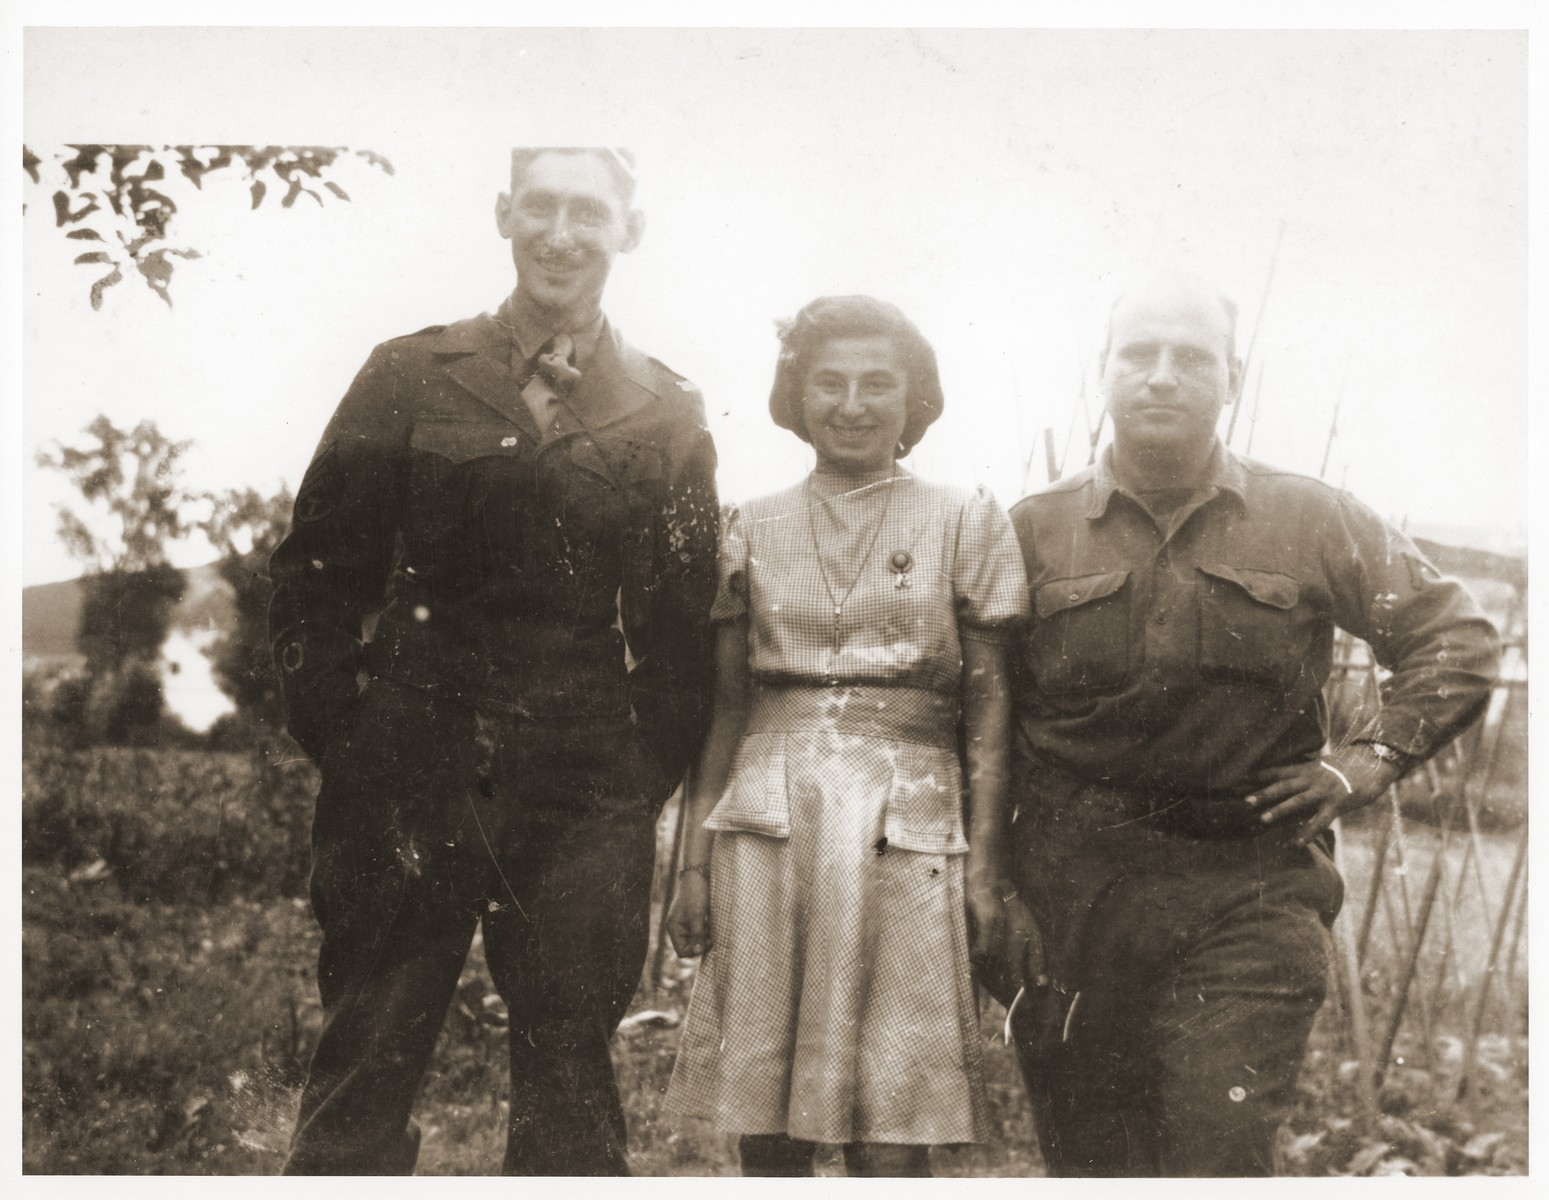 Two Jewish American soldiers from the 3rd U.S. Army pose with Halina Goldberg from Czestochowa.    Halina was one of approximately 150 Jewish women sent on a 500 km. death march that ended in Volary. The survivors recouperated in Prachatice, near Volary.